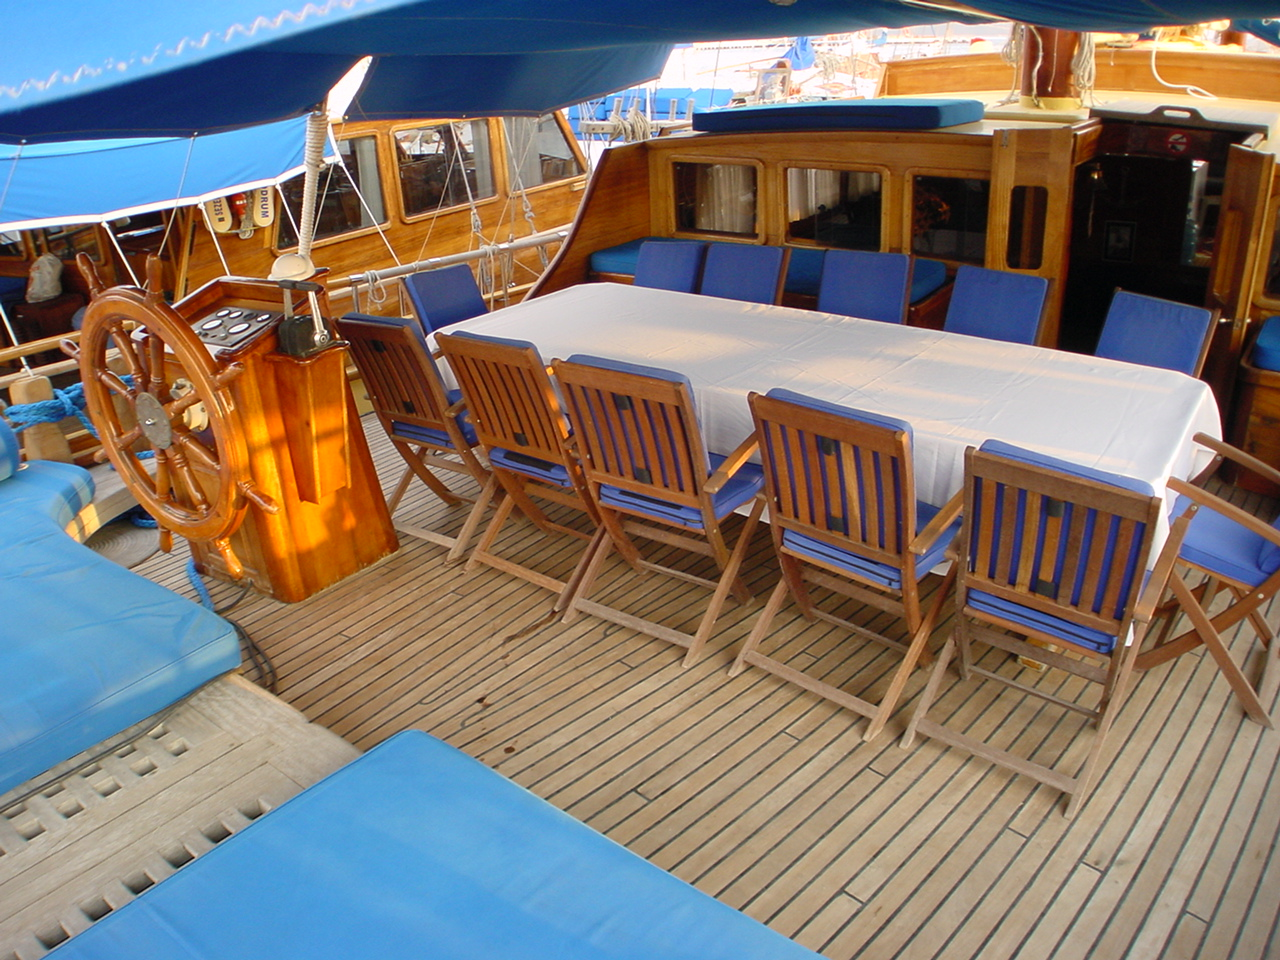 TANYELI I,STANDARD GULETS, Yachts for Rent, Yacht Charter, Yacht Rental